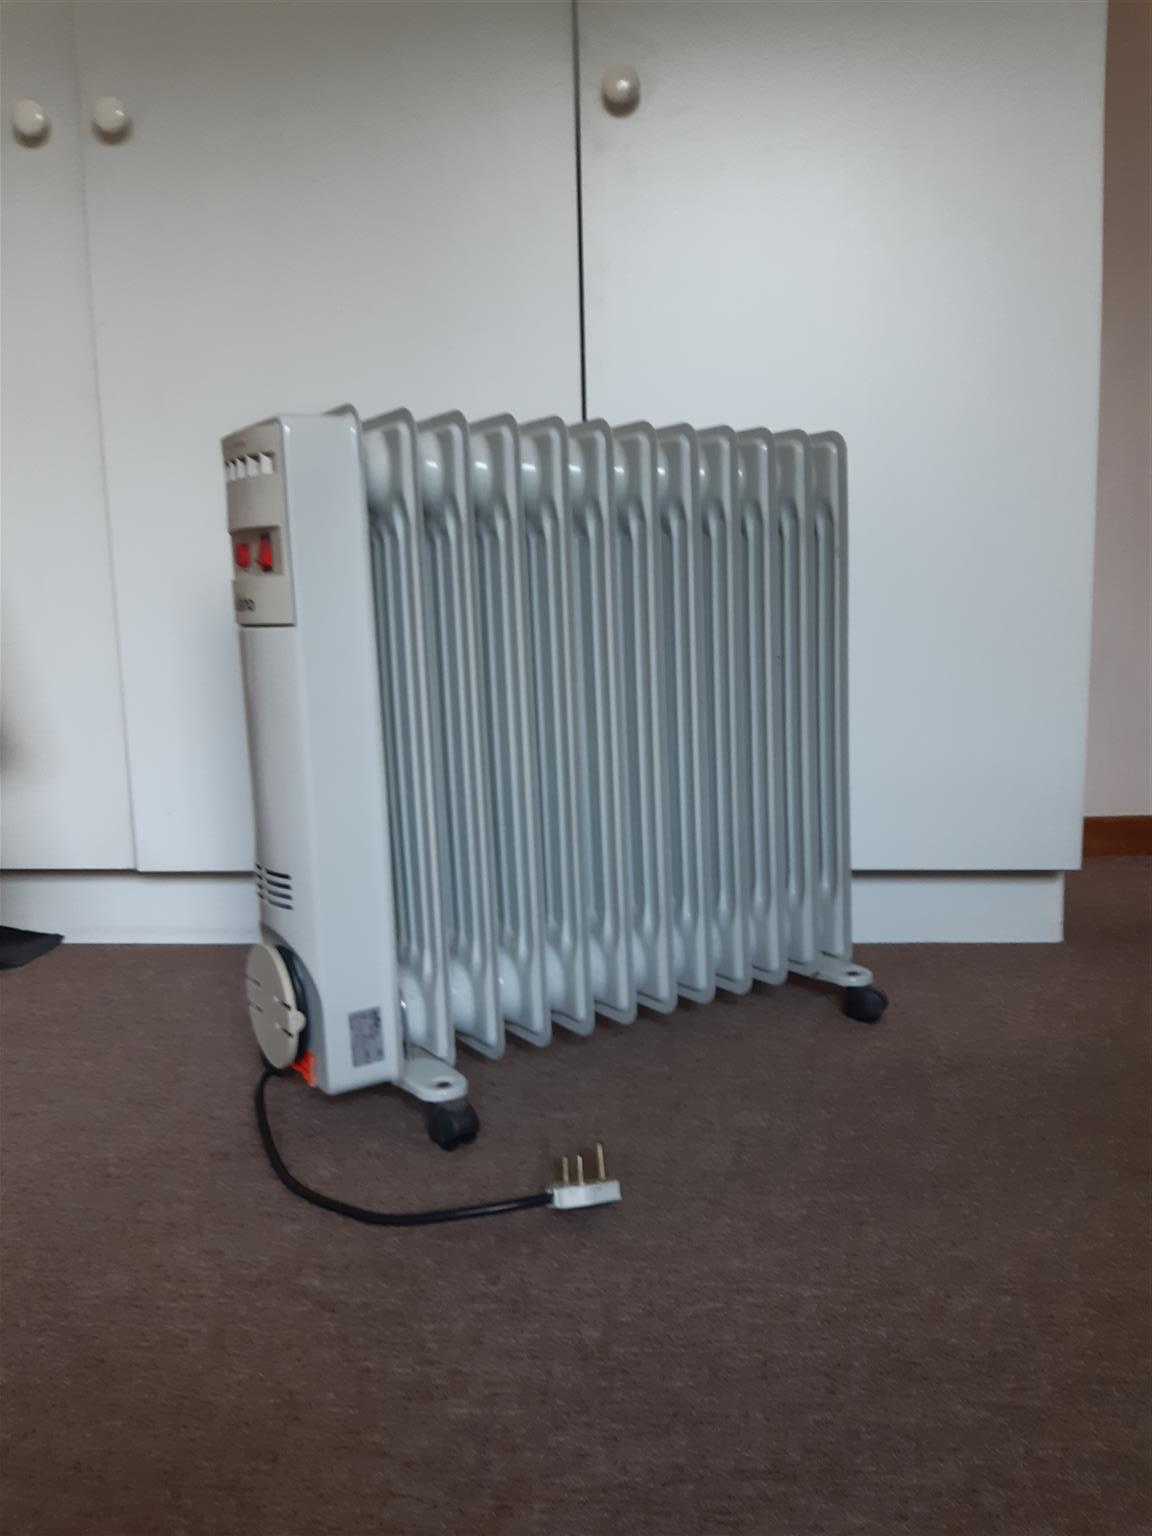 Electric oil 11 fin heater. Used as a stand by unit. Very economical on electricity consumption.